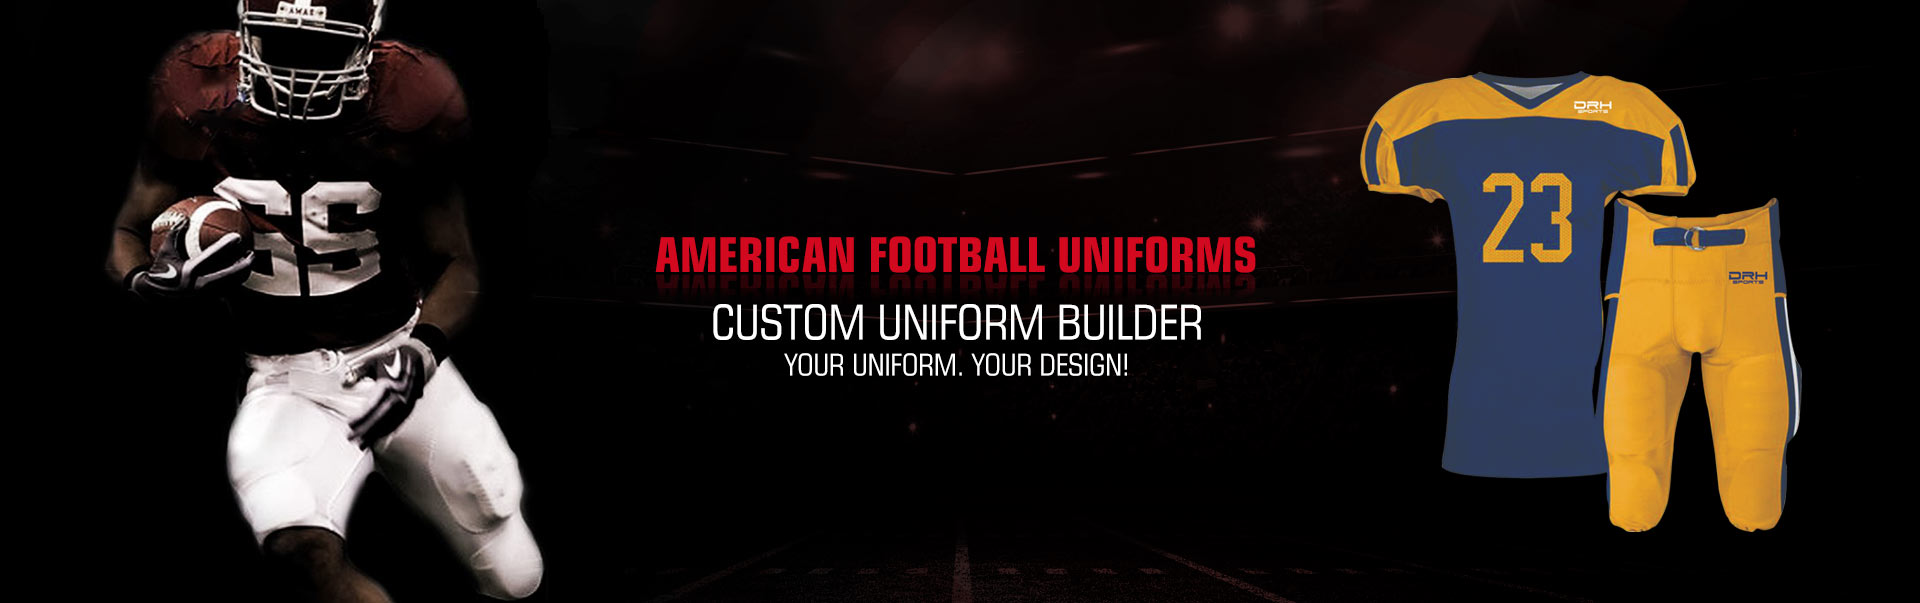 American Football Uniform Wholesaler, Suppliers in Bosnia And Herzegovina